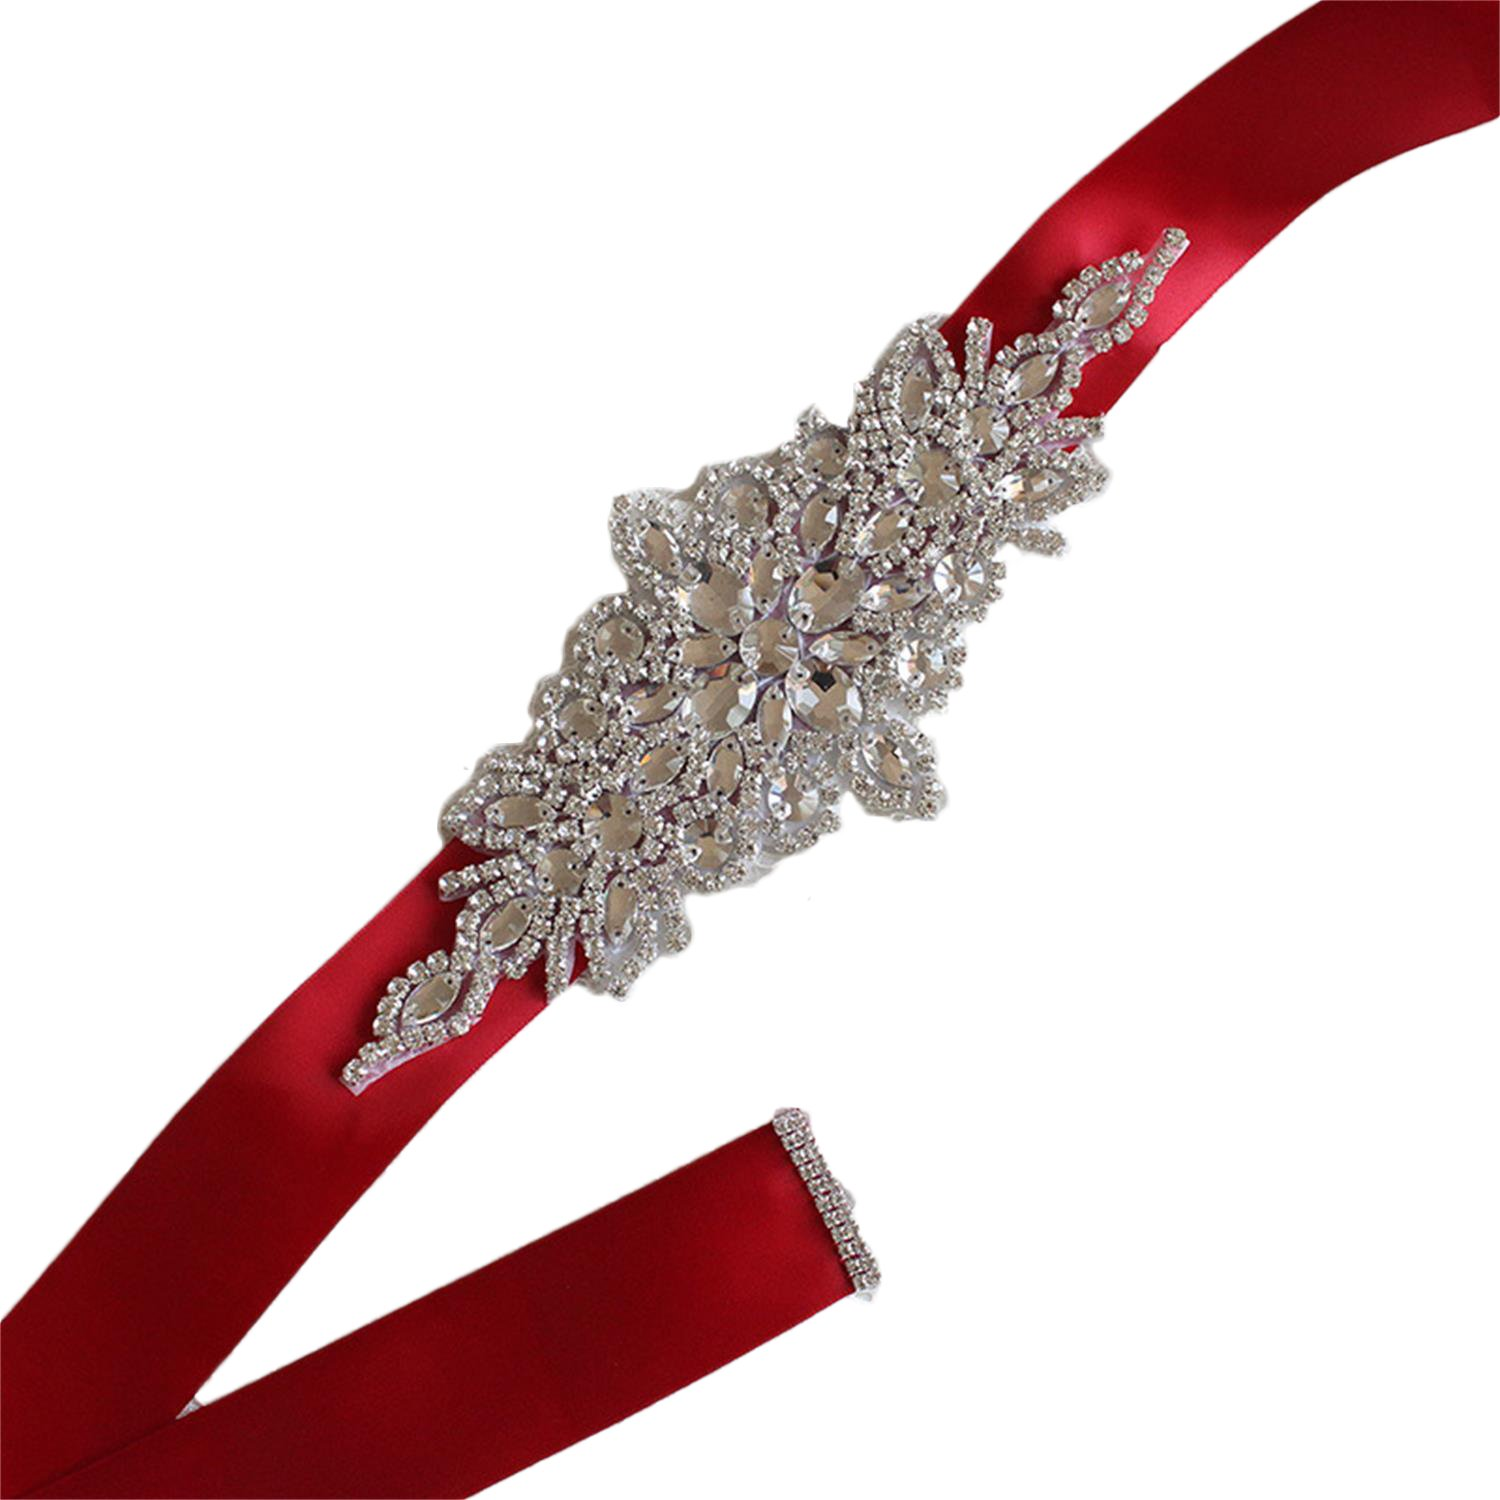 Vicokity Bridal Crystal Rhinestone Sash Belt With Ribbon For Wedding Party Prom Evening Dresses (175cm long, Wine Red)